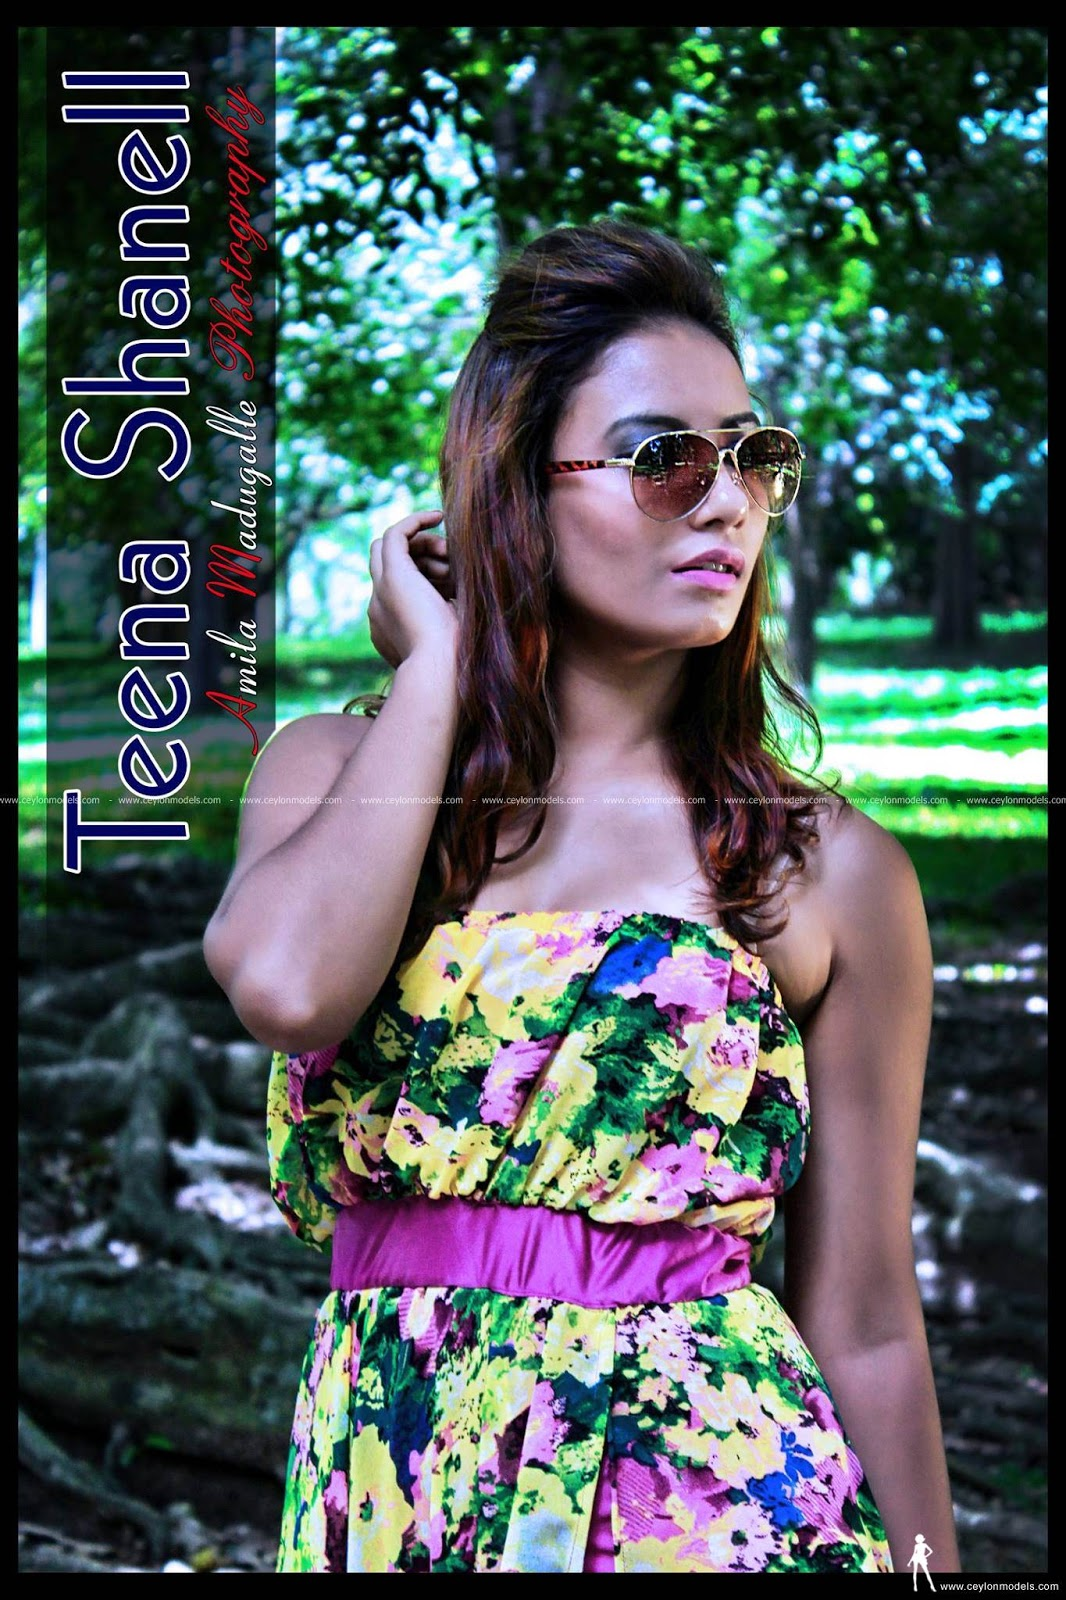 sri lankan upcoming supper model teena shanell latest photos how to become a model party dress with long frock idea sri lankan hotel and resort